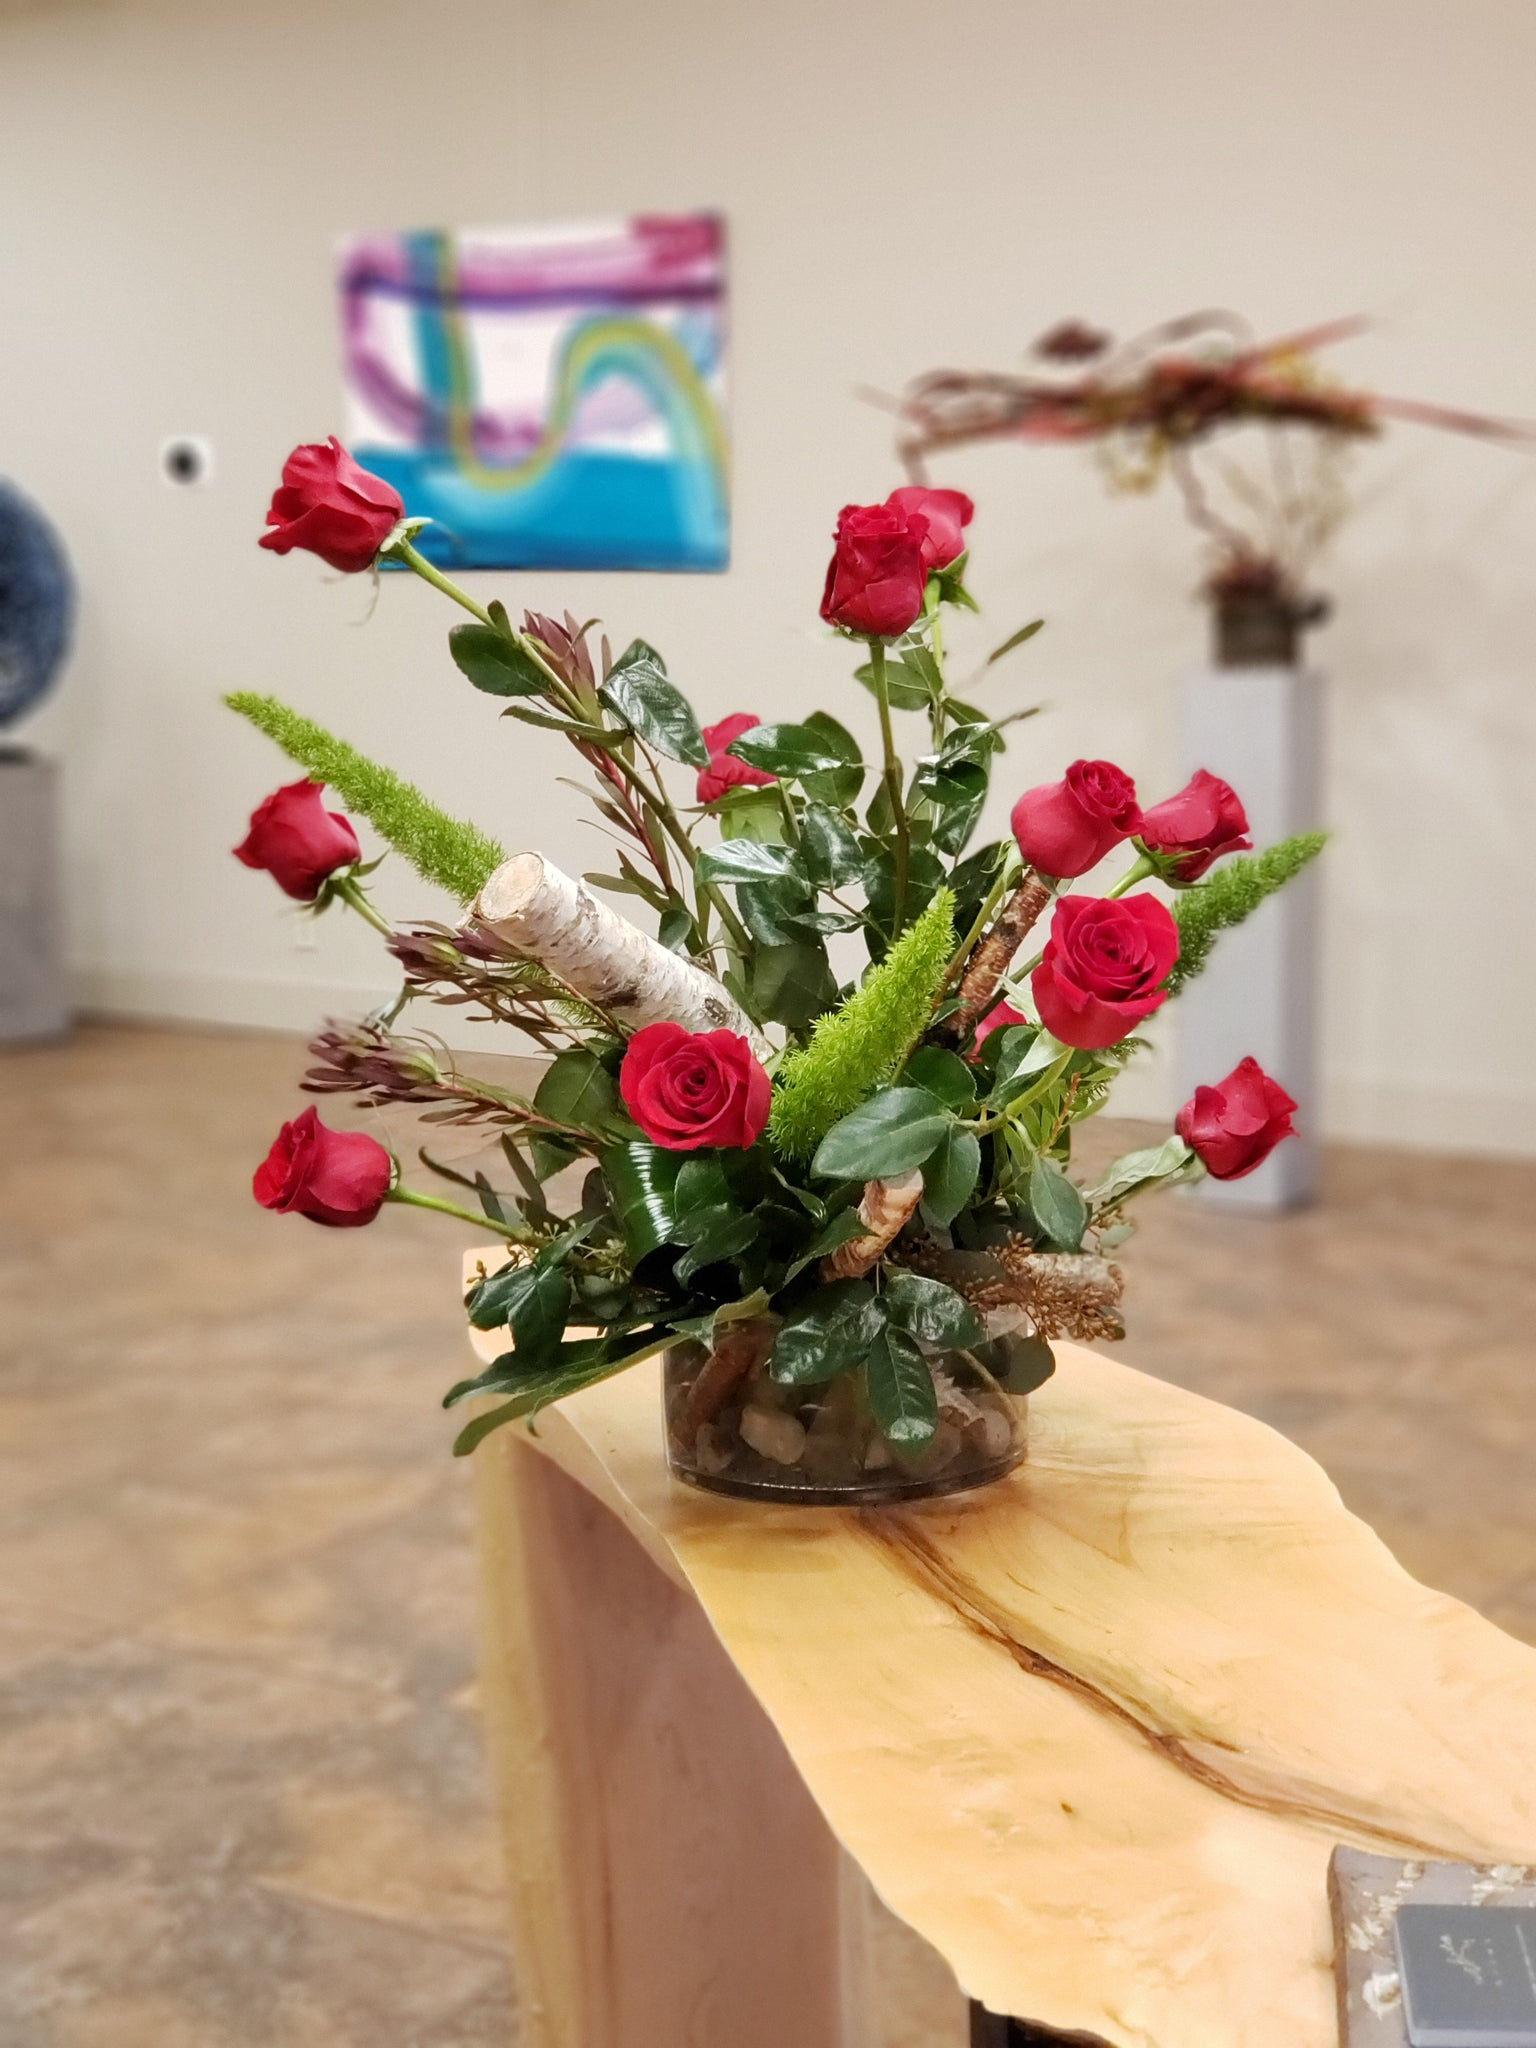 All-rose centerpiece, height variance, birch wood poles